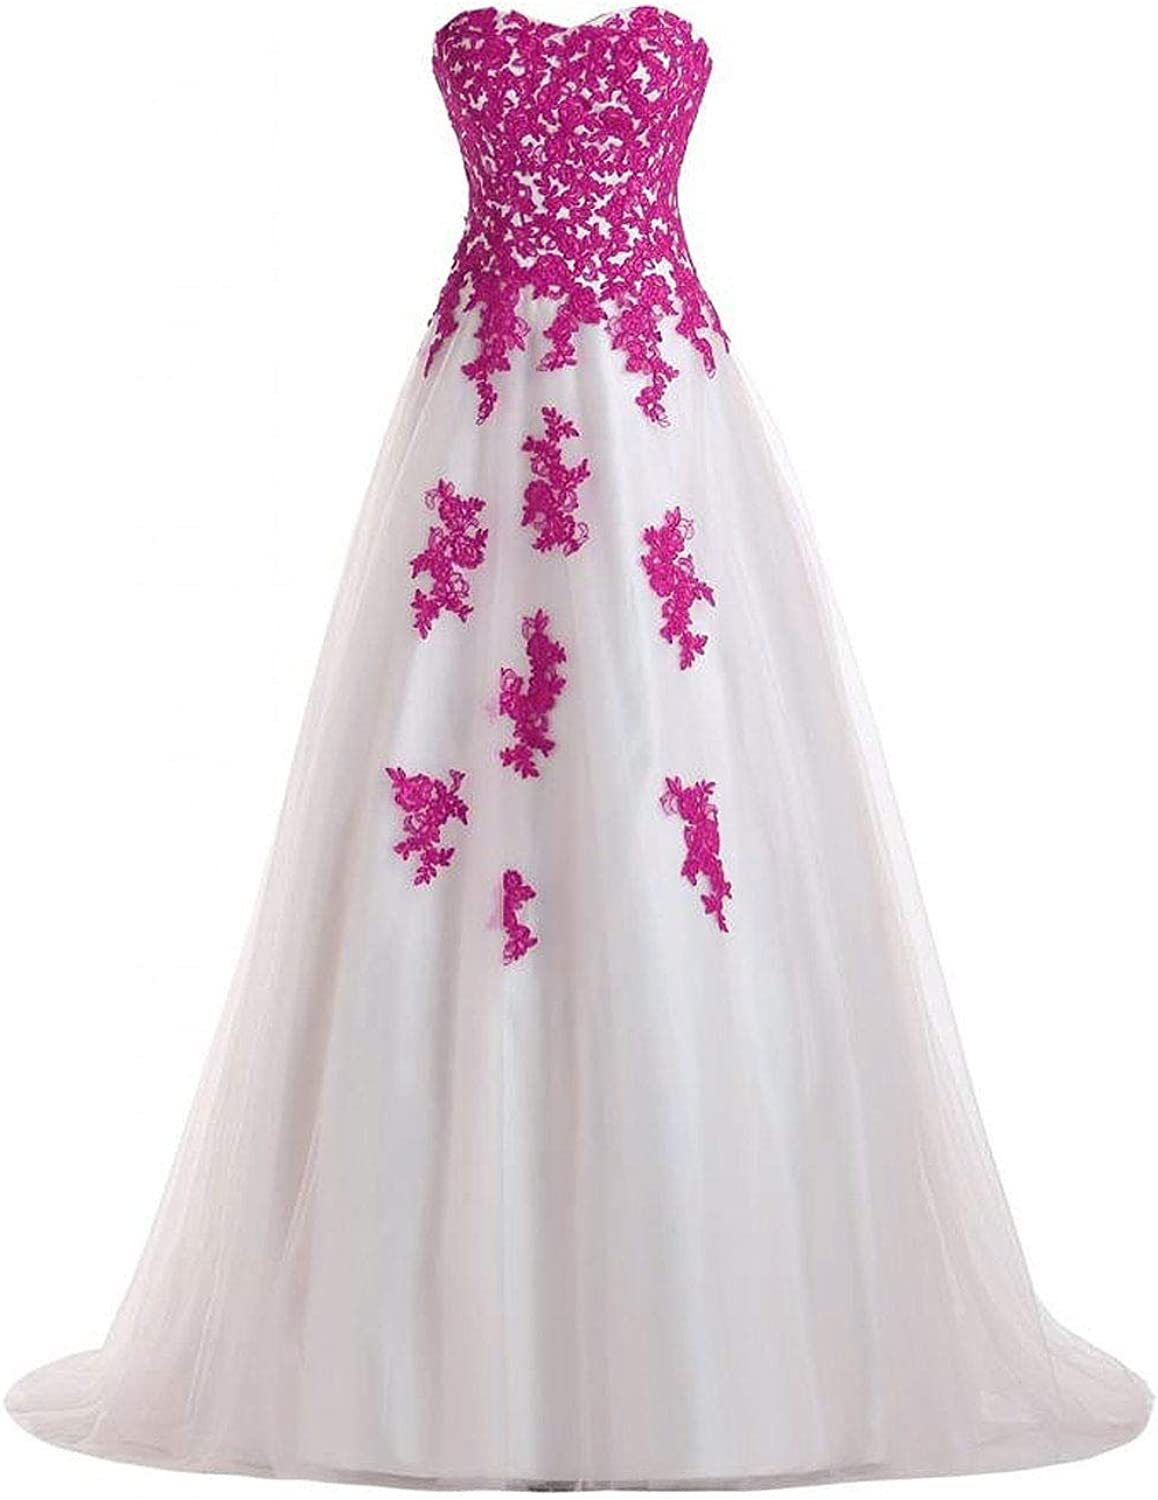 DINGZAN Puffy Lace and Tulle Bridal Dresses Quinceanera Ball Prom Gowns